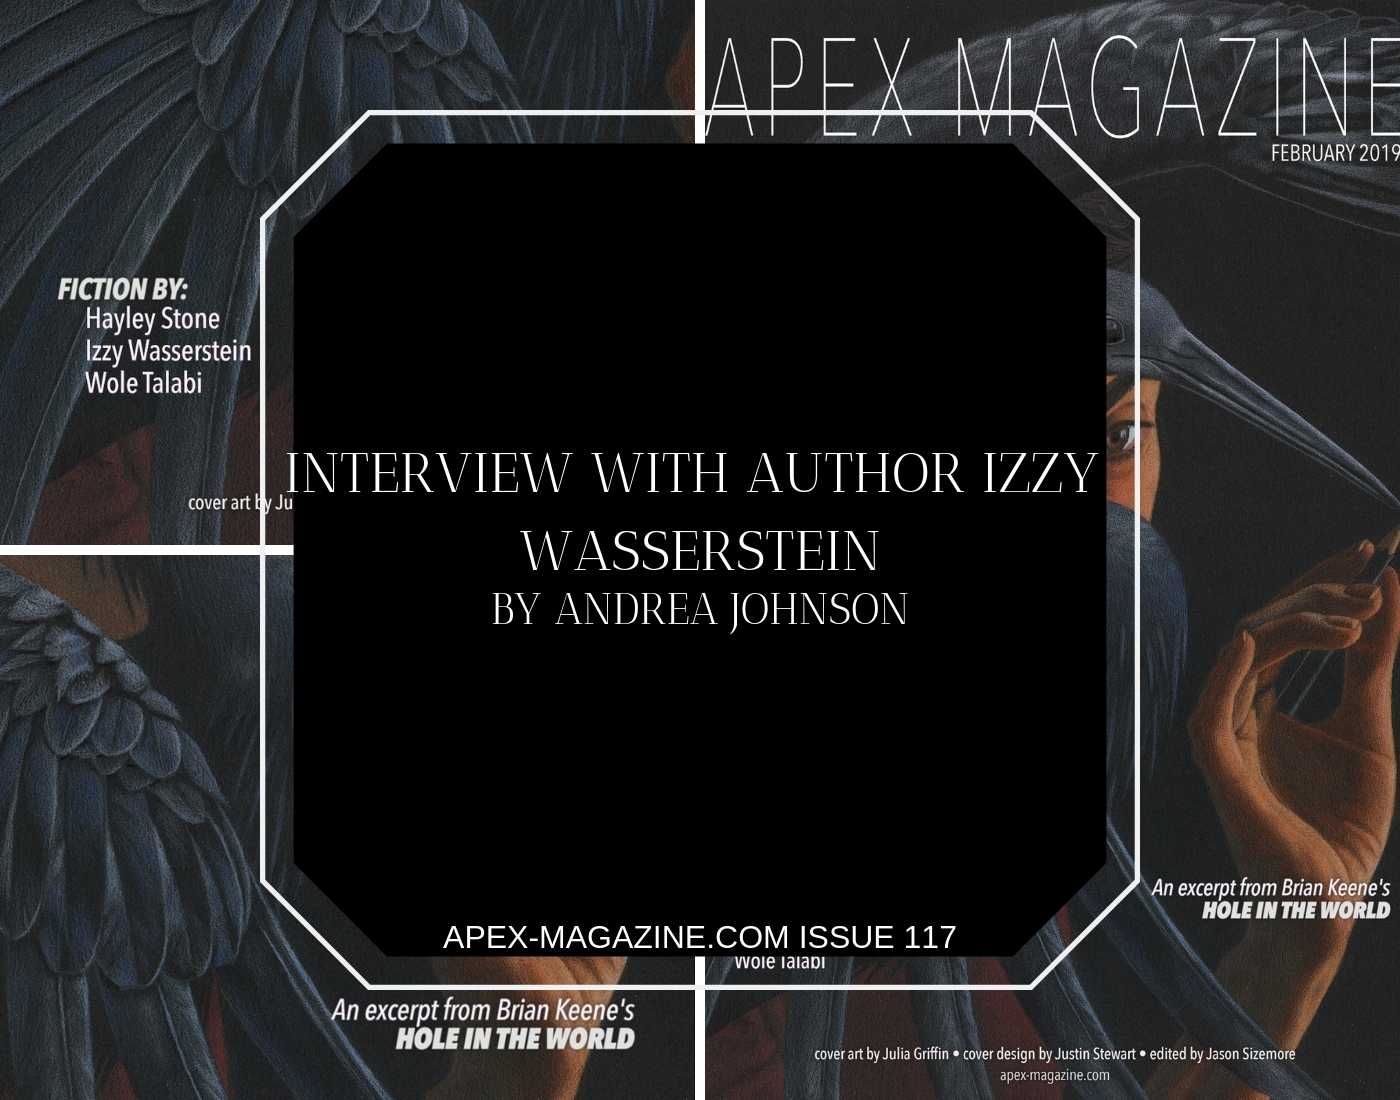 Interview with Author Izzy Wasserstein